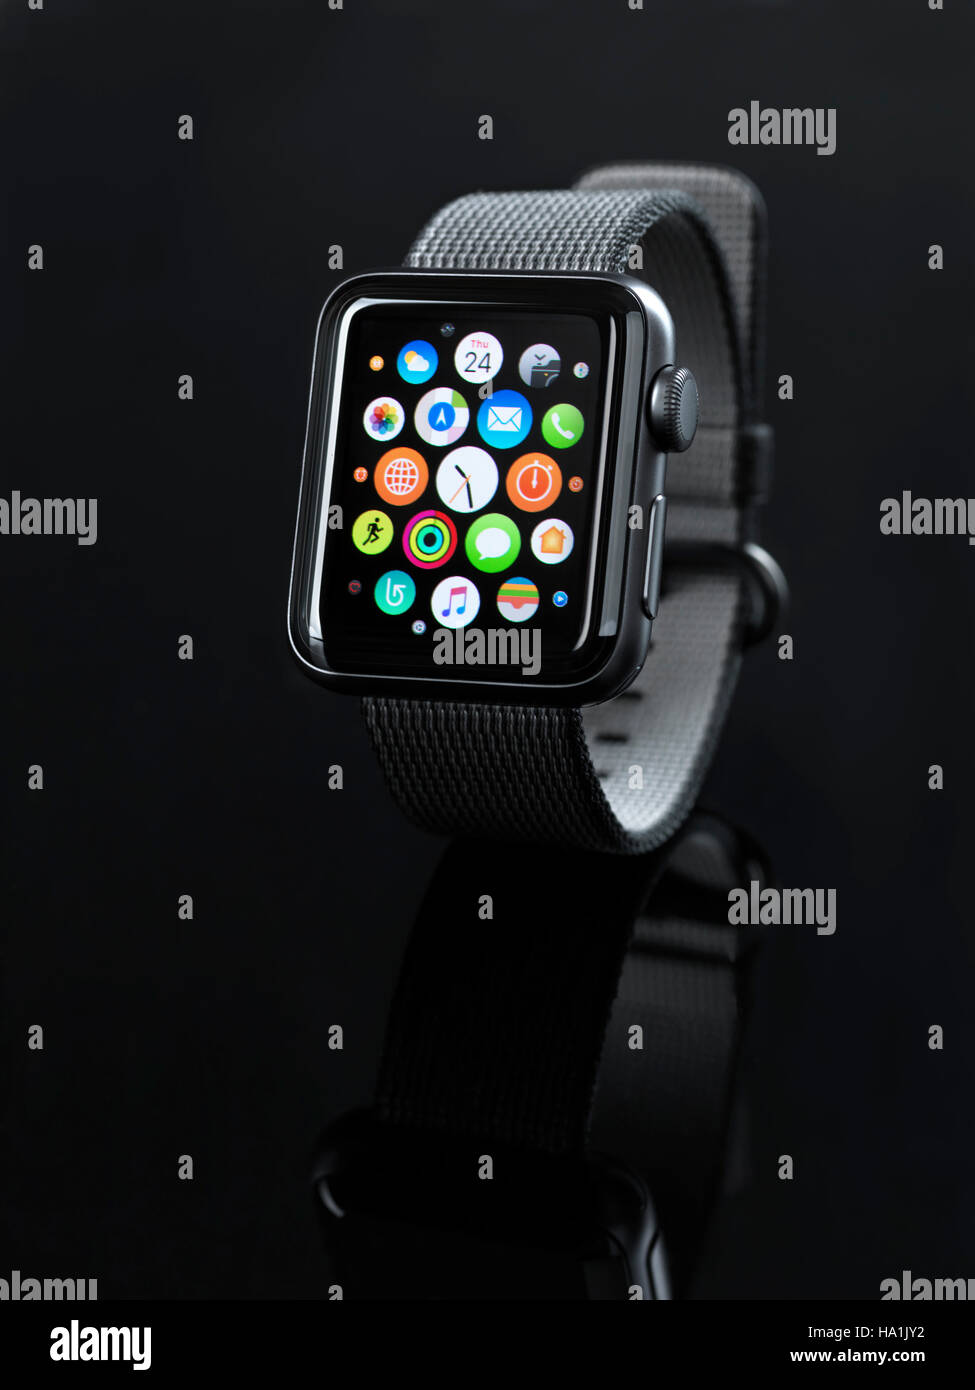 Shiny Steel Apple Watch Series 2 Smartwatch With App Icons On Display Stock Photo Alamy